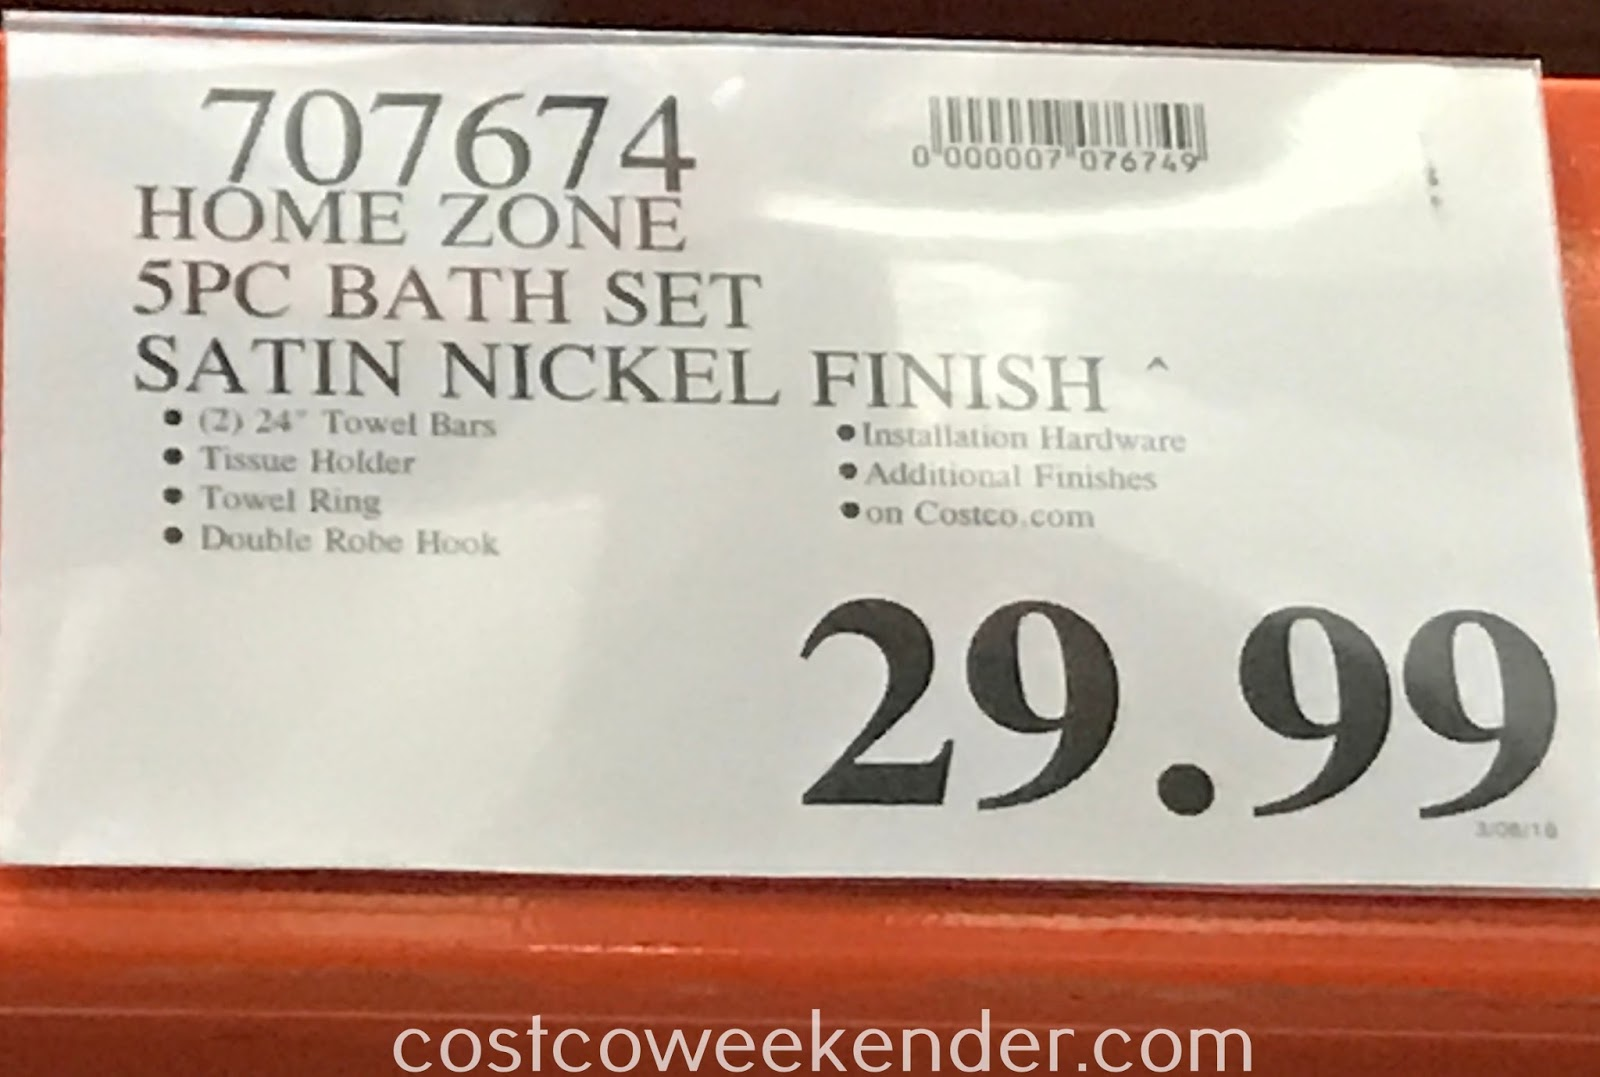 Deal for the Home Zone 5-Piece Bath Collection at Costco